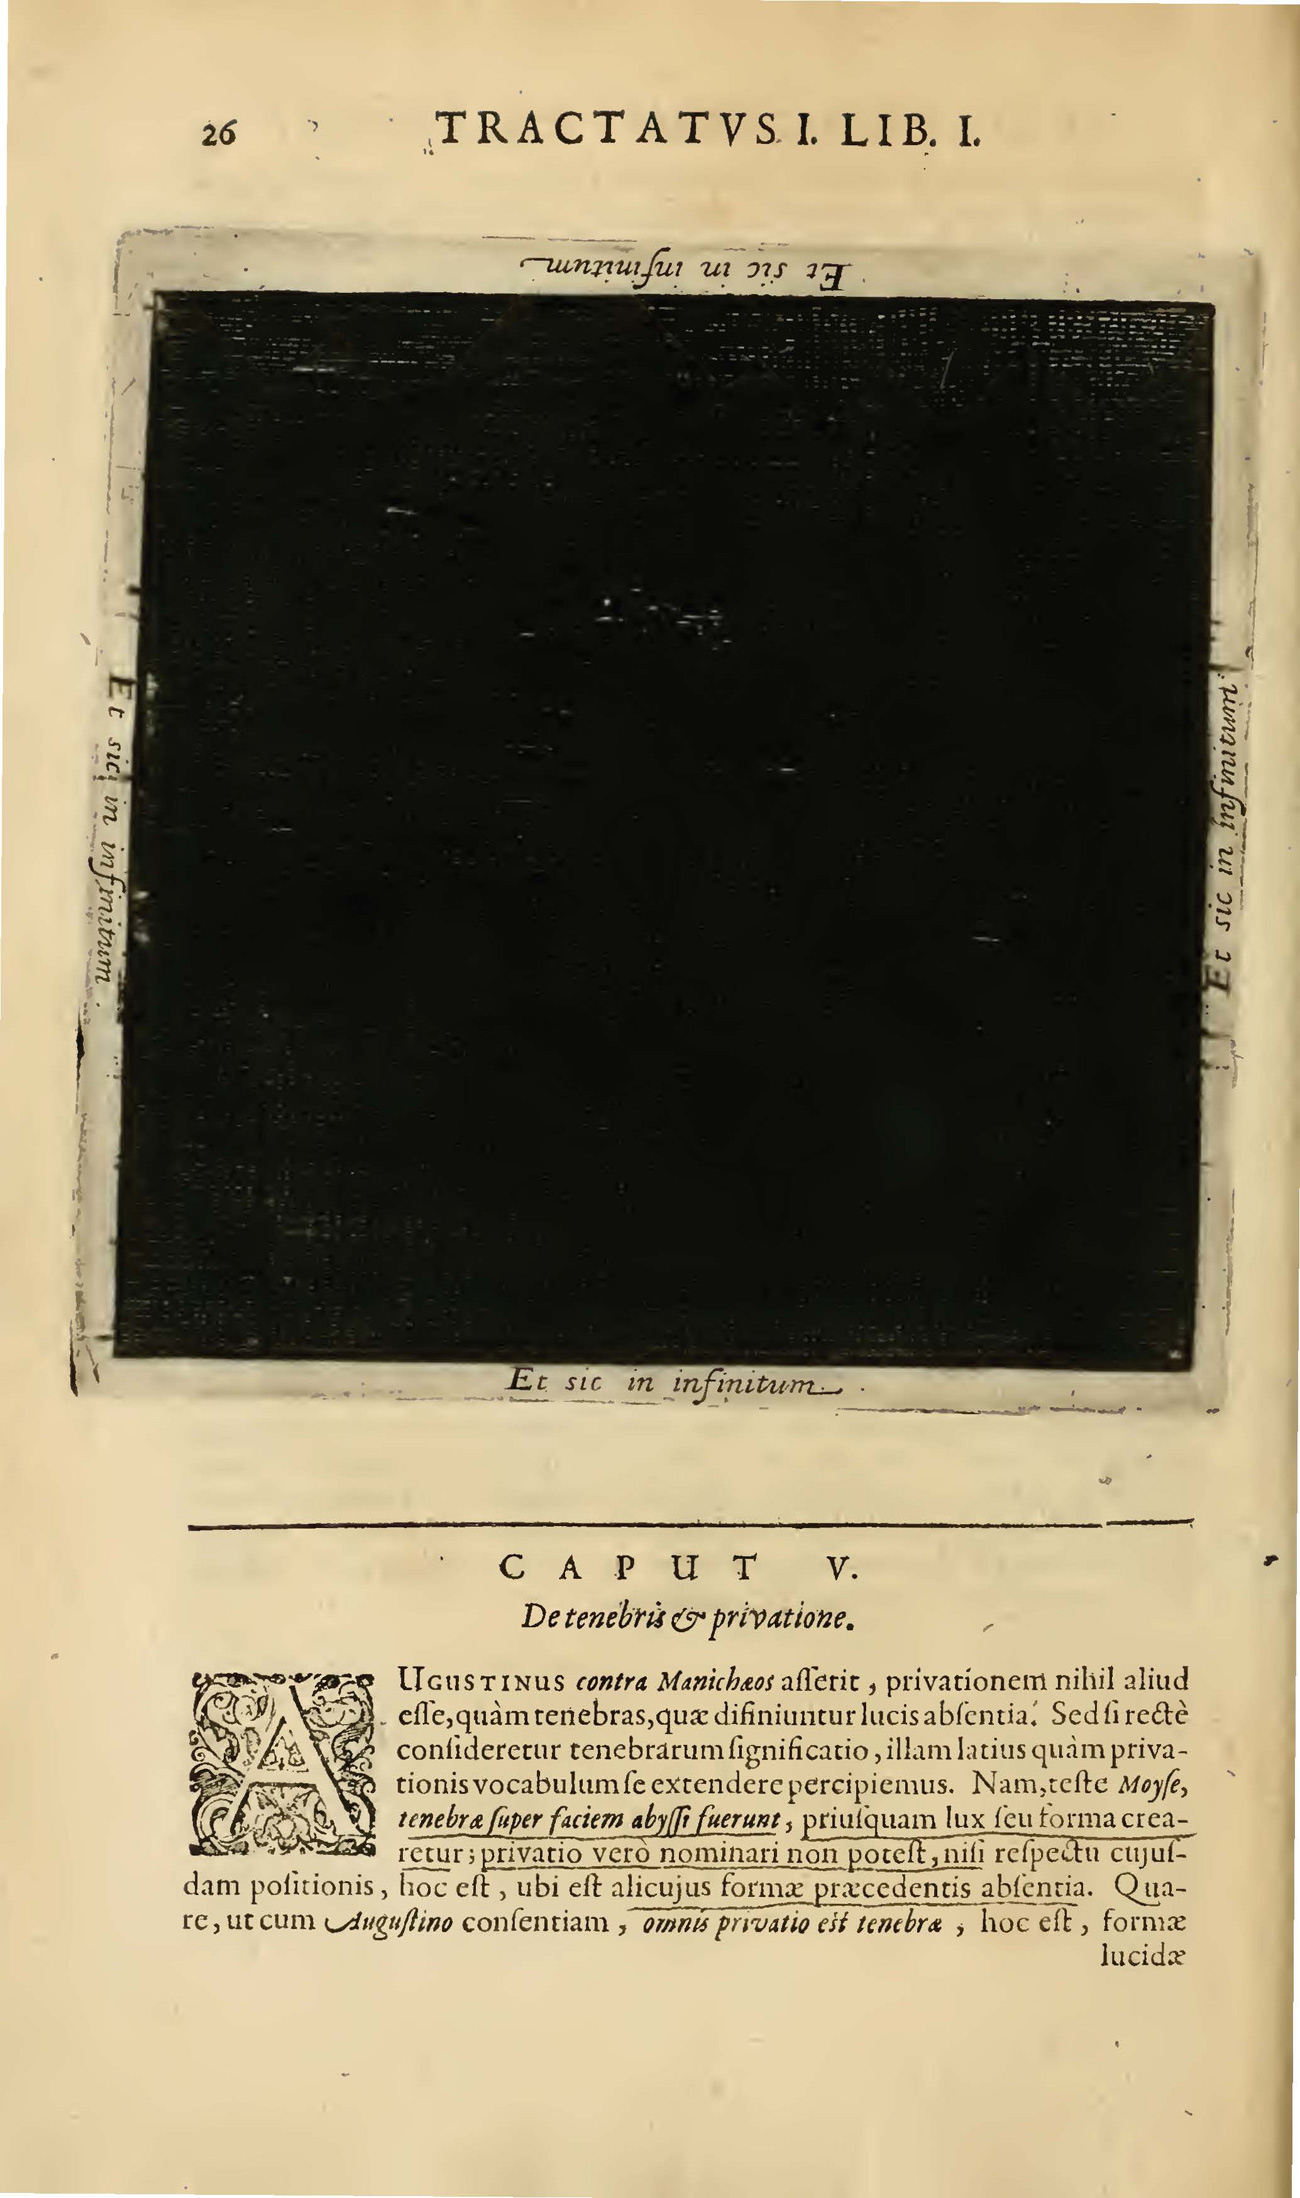 A mostly solid black square image with text. The top of the page says TRACTATVS I. LIB. I.